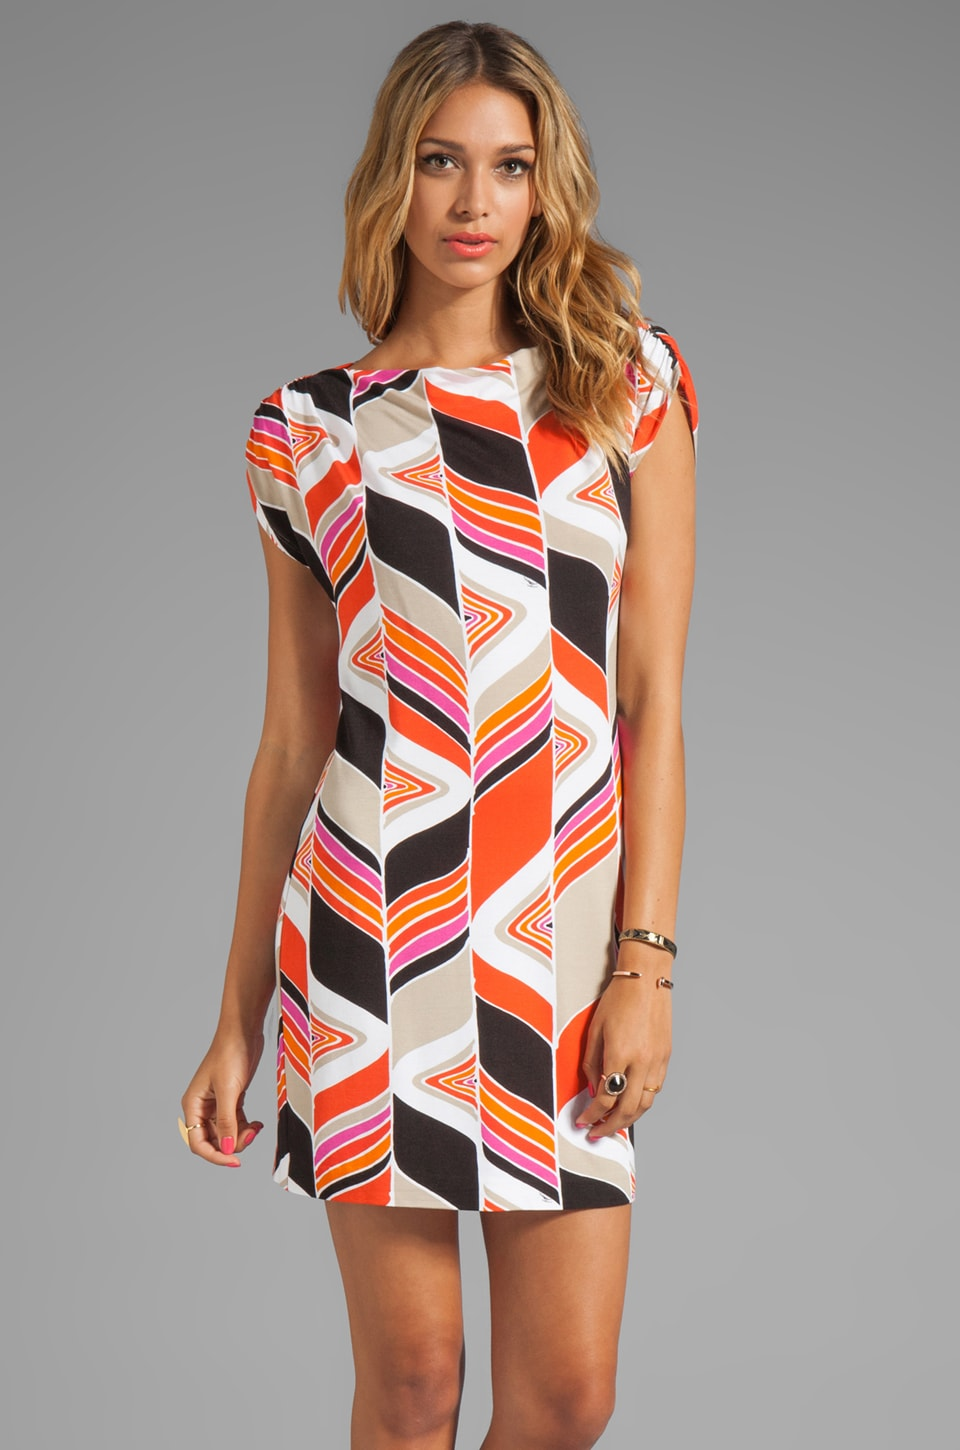 Trina Turk Mod Wave Arena Mini Dress in Coral Kiss